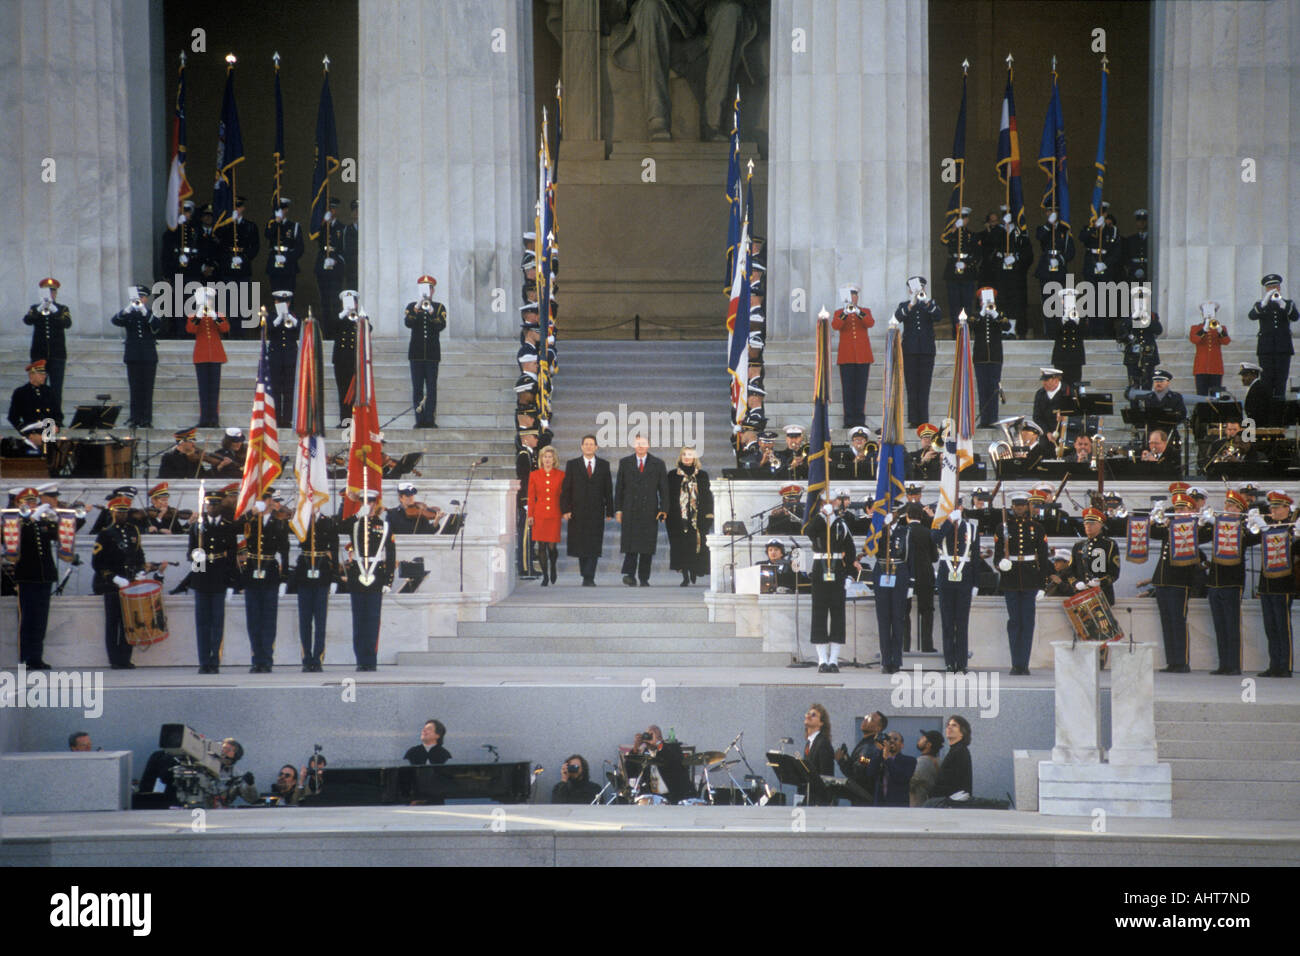 Bill Clinton 42nd President at Lincoln Memorial Opening Concert s pre Inaugural event January 17 1993 in Washington DC - Stock Image